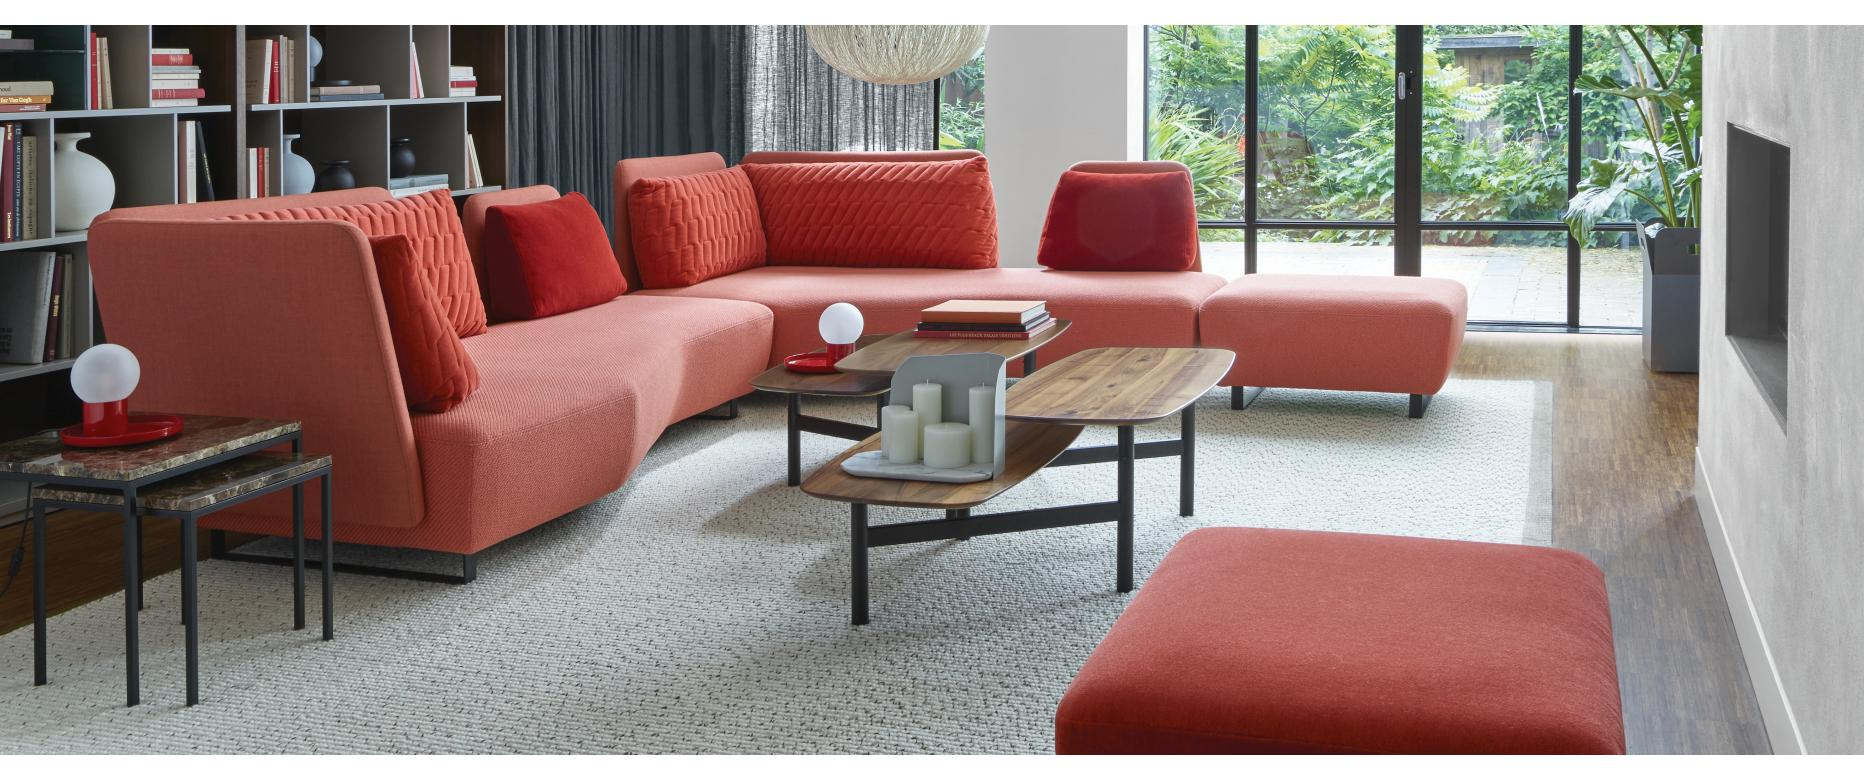 Designer Sofa Holz Ligne Roset Official Site Contemporary High End Furniture